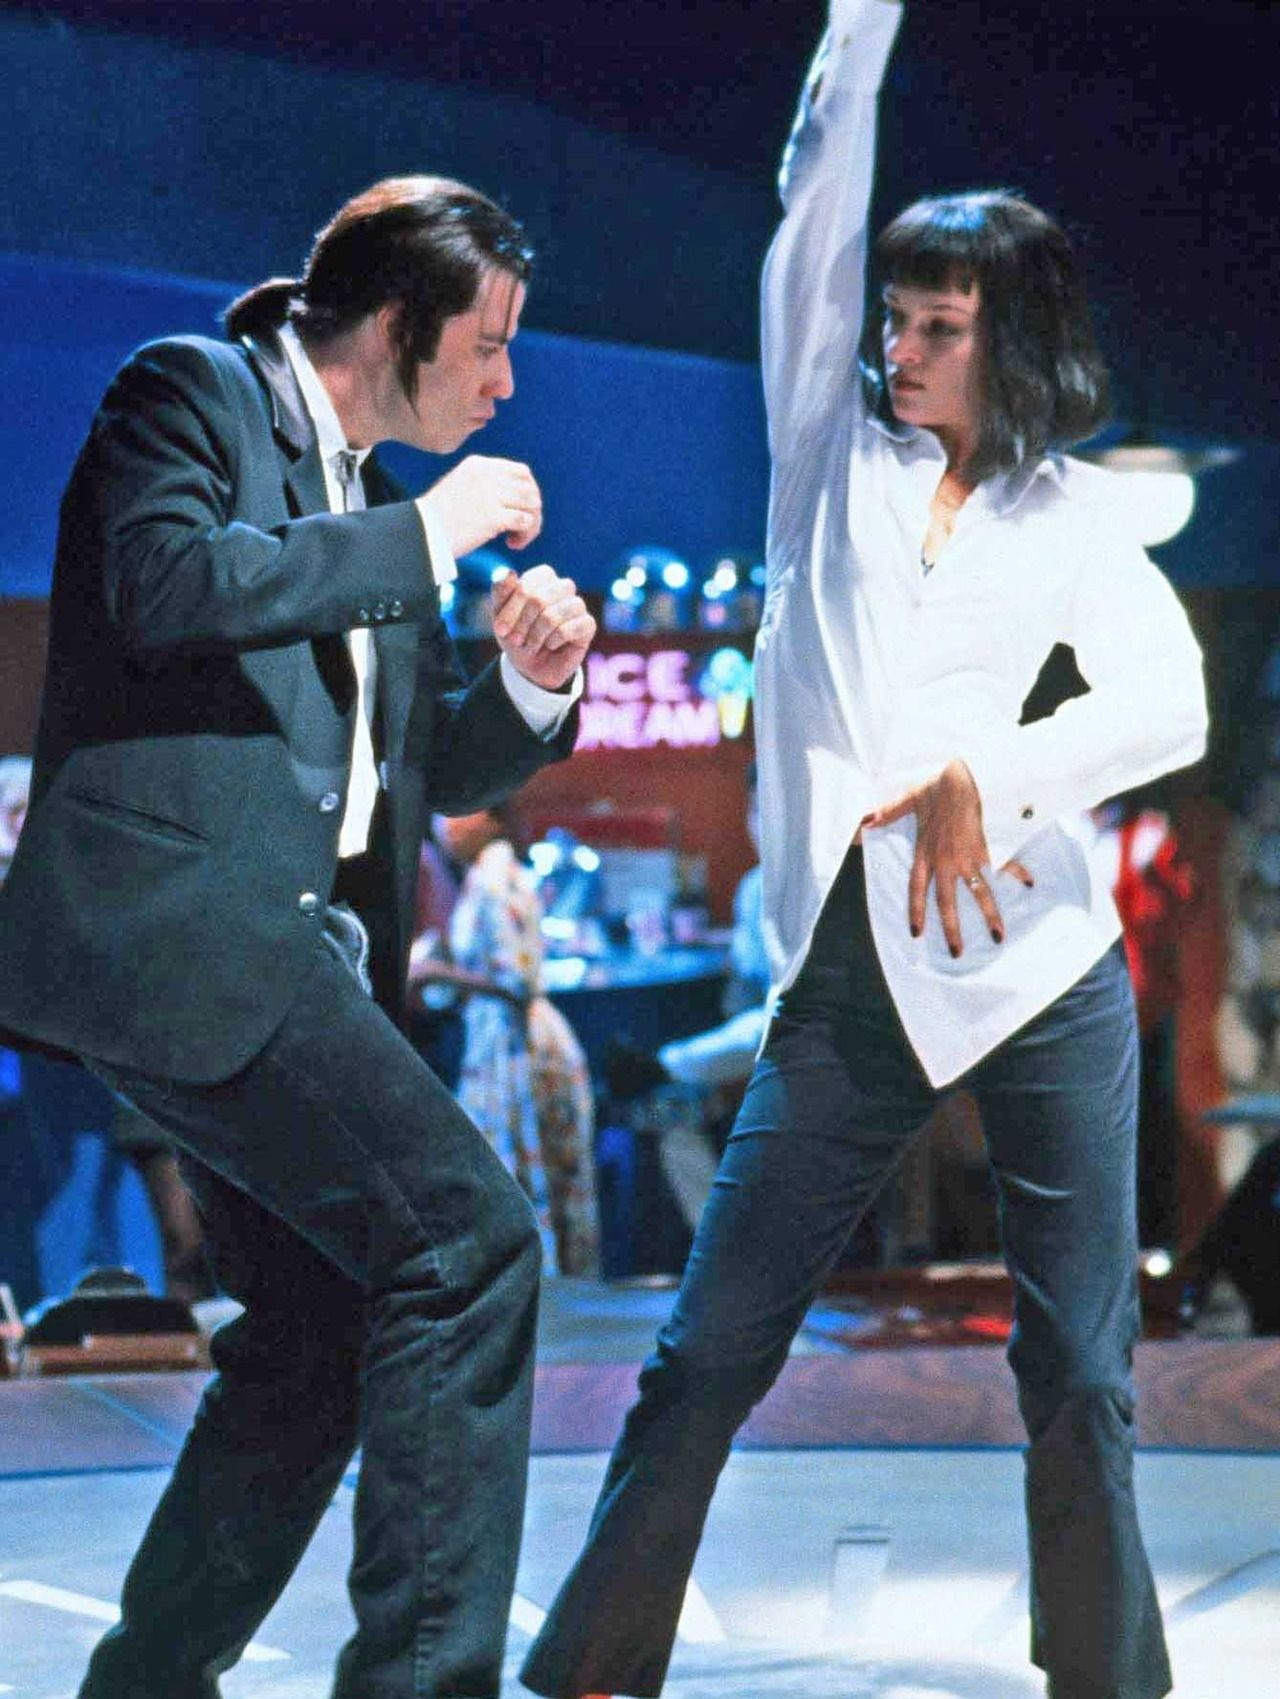 a review of pulp fiction a famous film by quentin tarantino A collection of quotations by quentin tarantino on movies, fiction, pulp, life, humor, inspiration, characters, writing, vampires, emotions and situations.